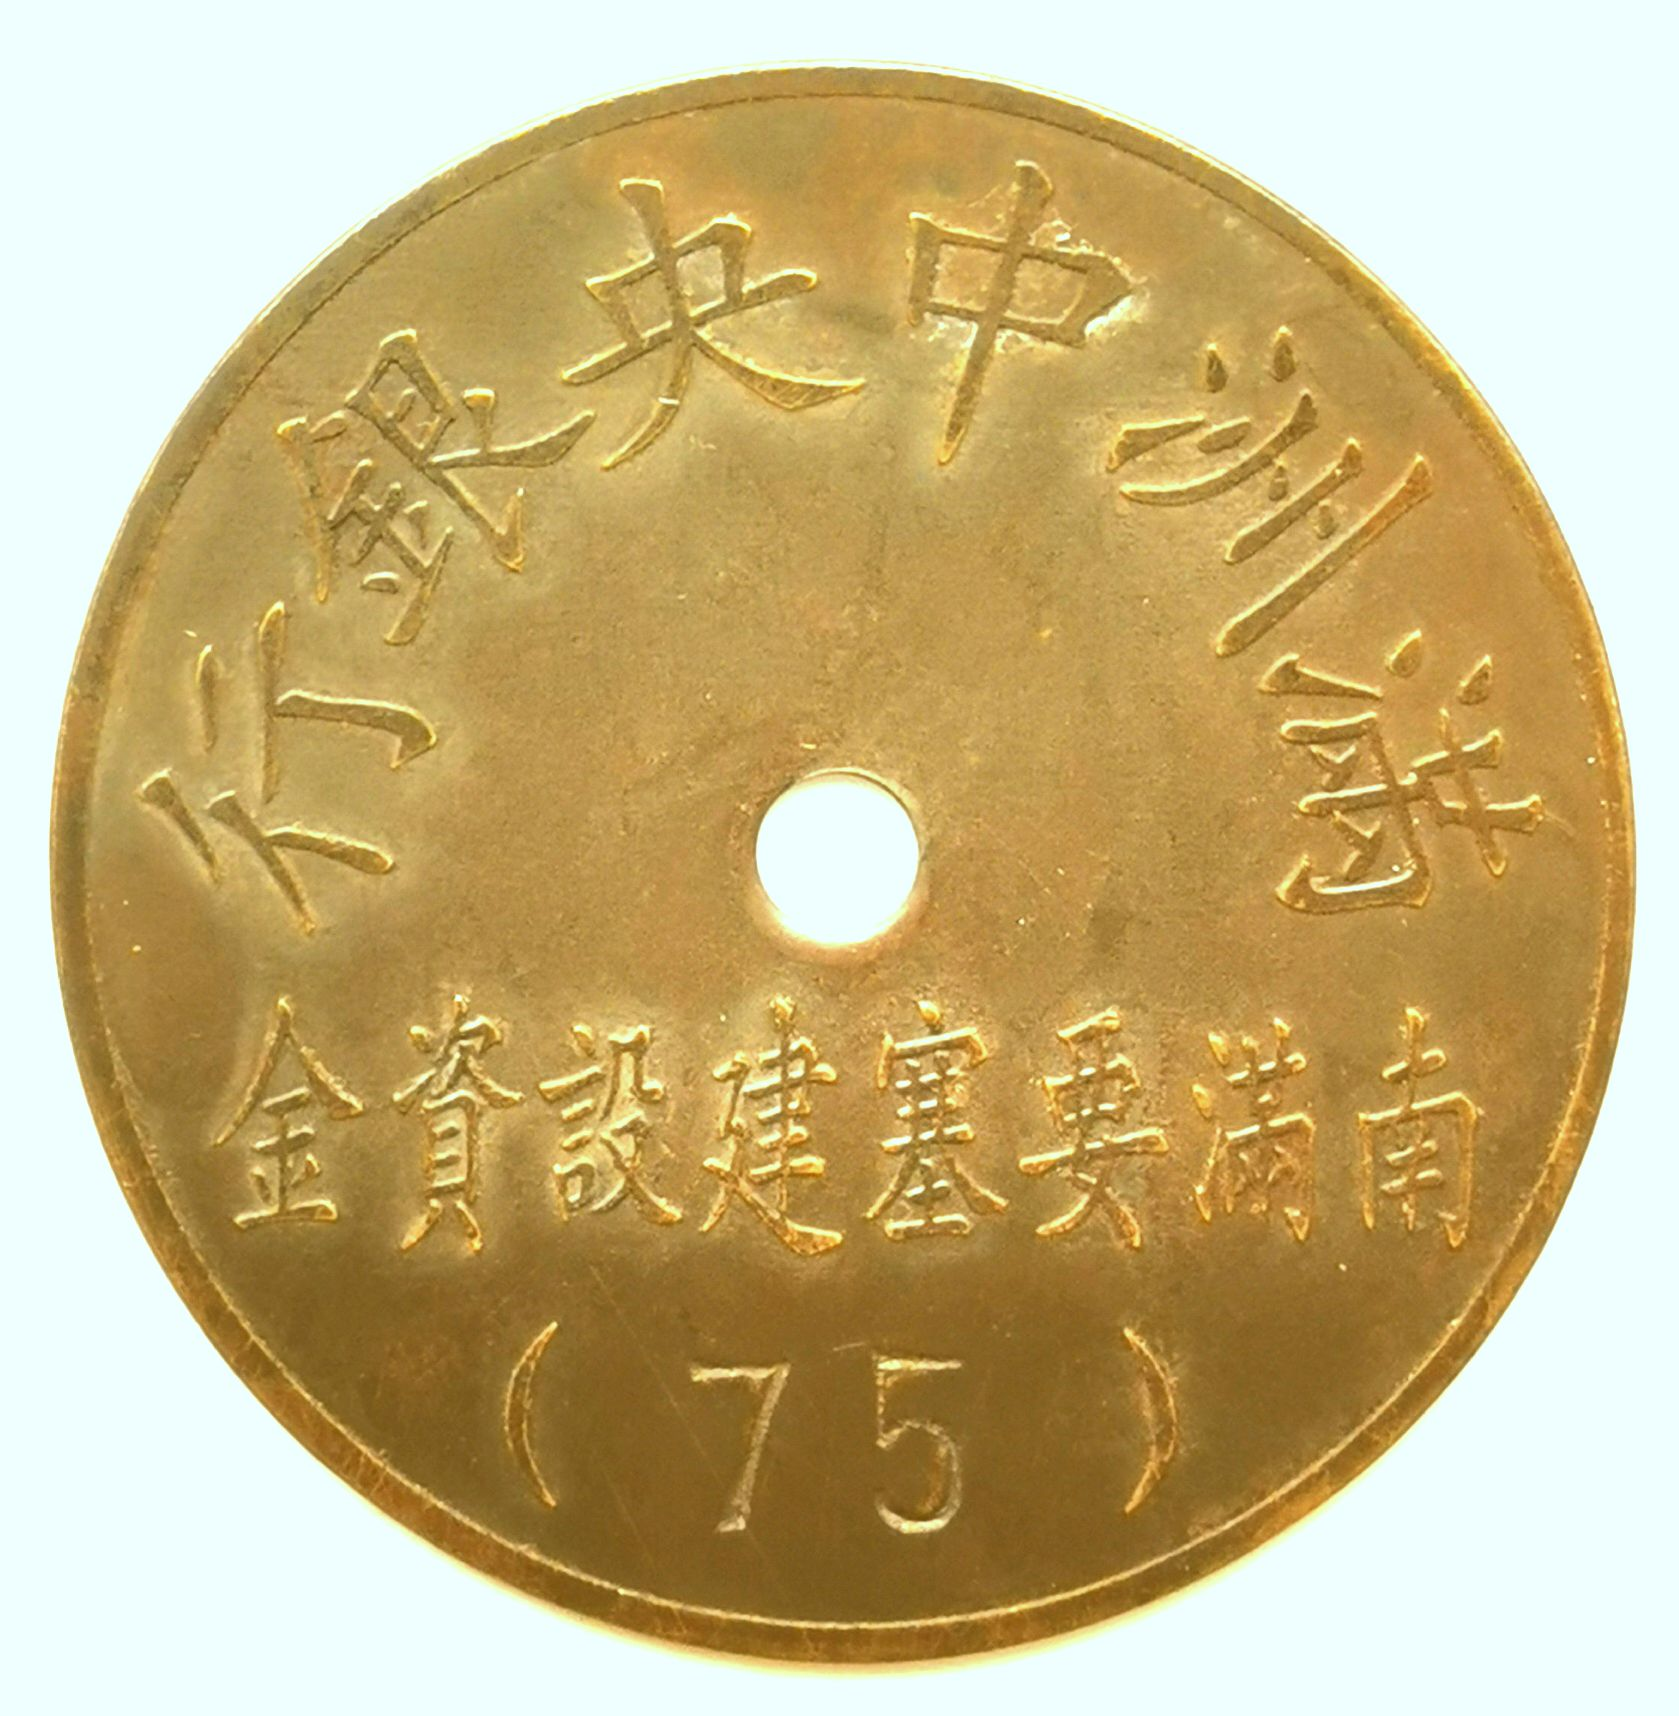 BT547, South Manchukuo Fortresses Construction Fund, 75 Yen Token, 1944